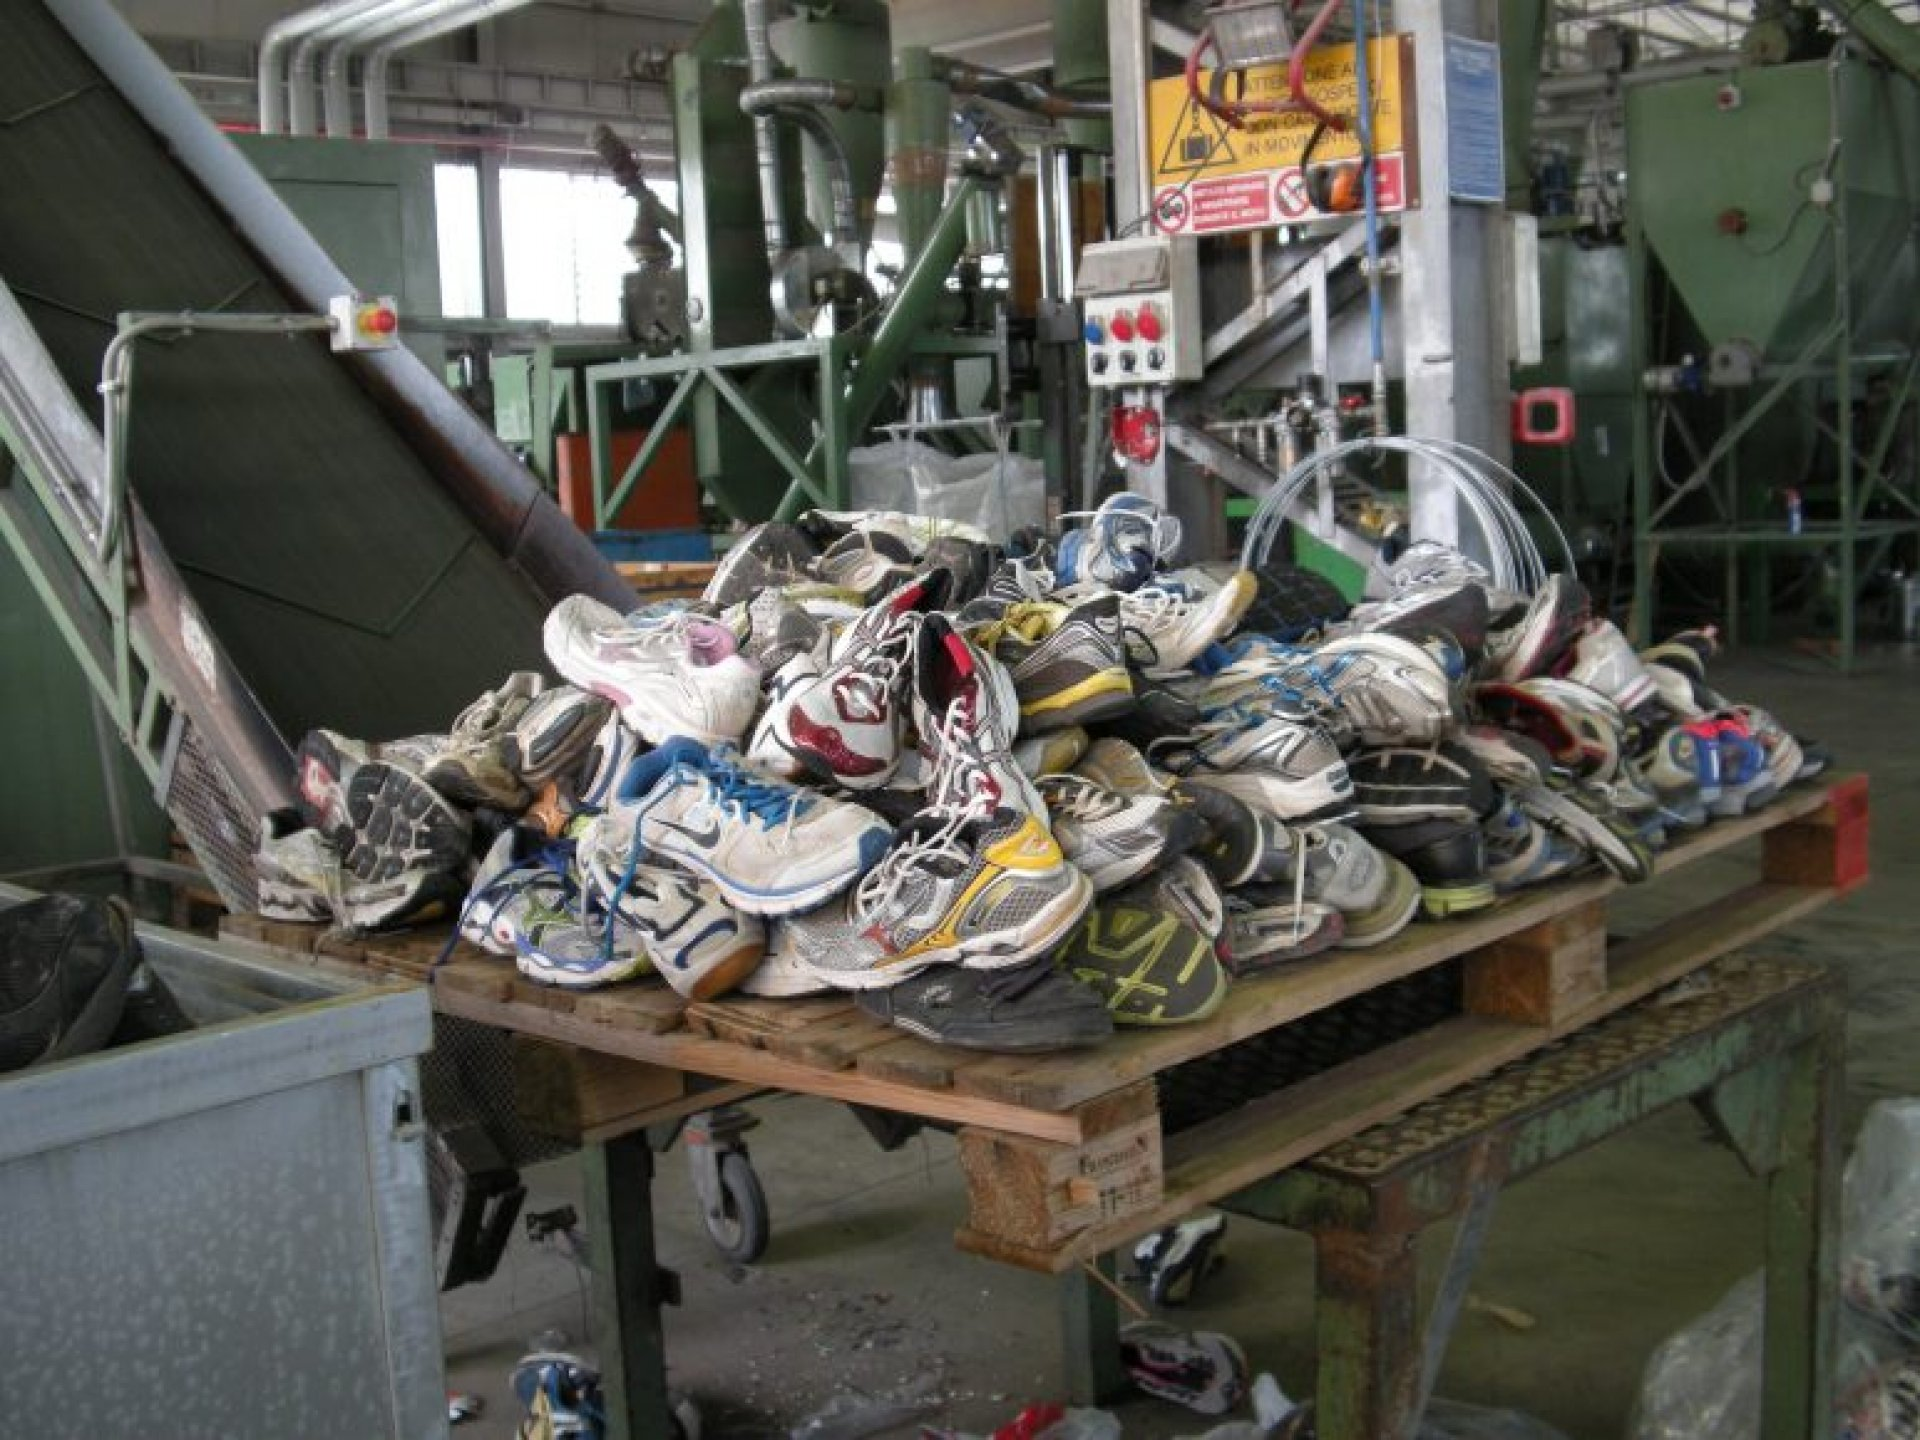 Management, collection and recycling